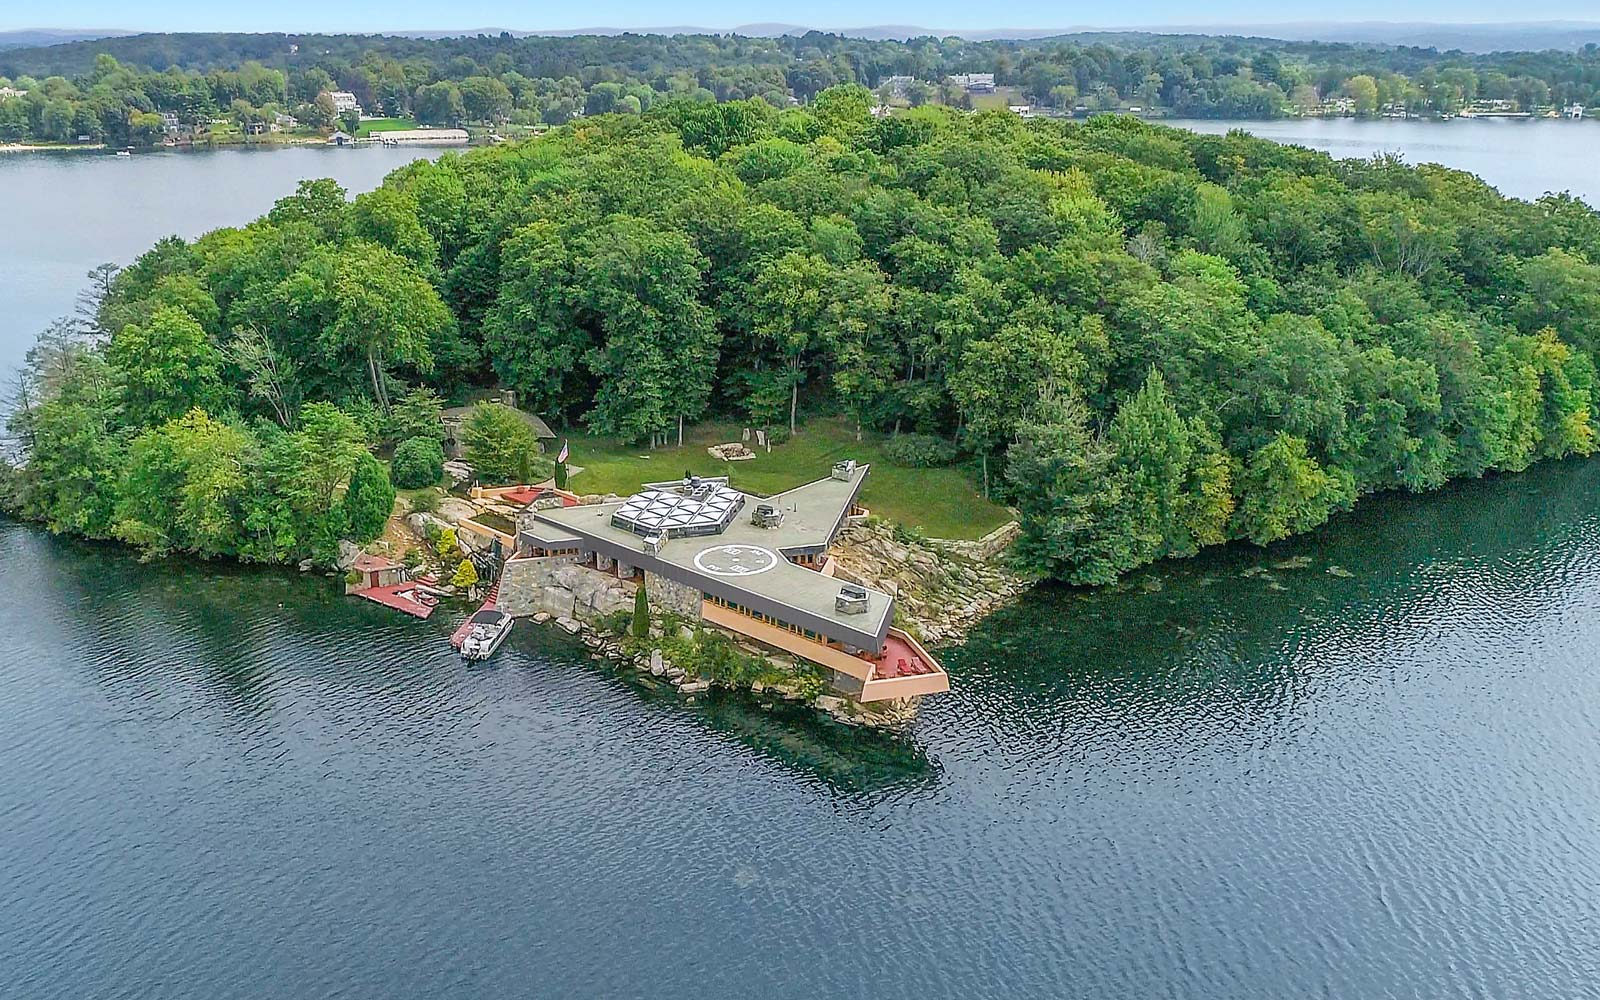 This Private Island Has 2 Homes Designed by Frank Lloyd Wright — and It's for Sale